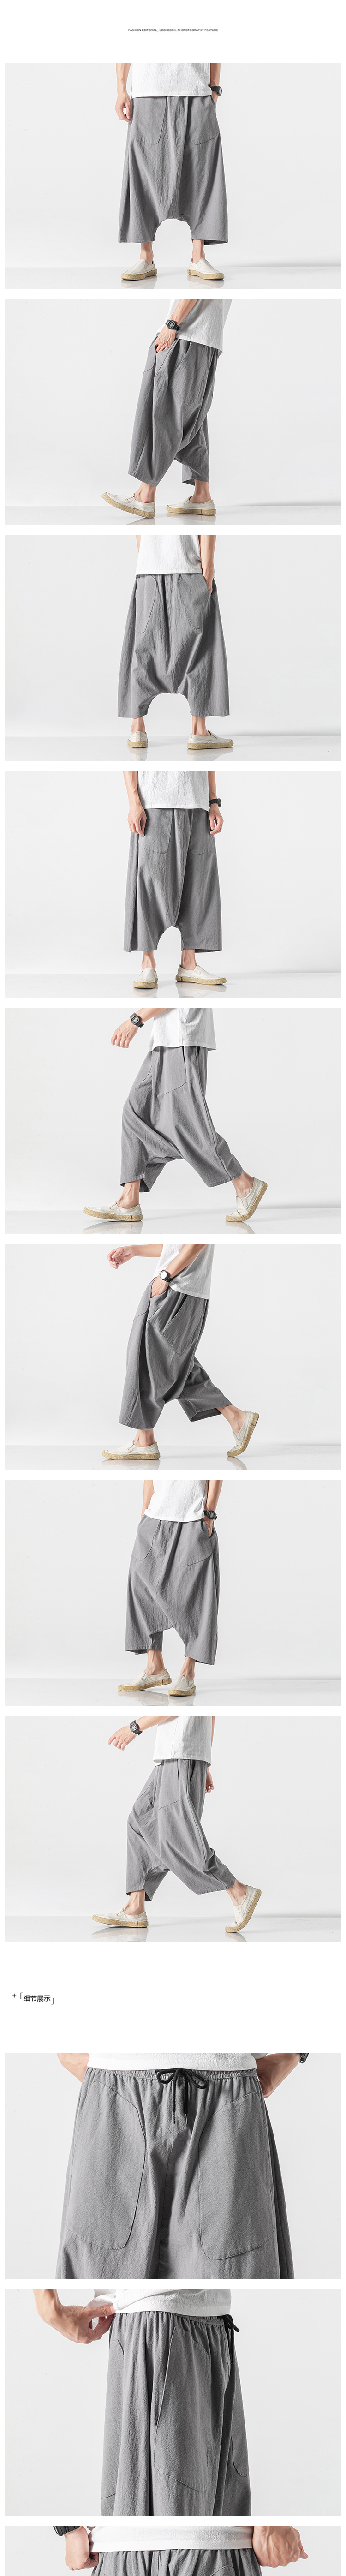 Sinicism Store Men Solid Summer Cross Pants Mens 2020 Japanese Wide Leg Trousers Male Linen Chinese Style Pants Clothing 5XL 28